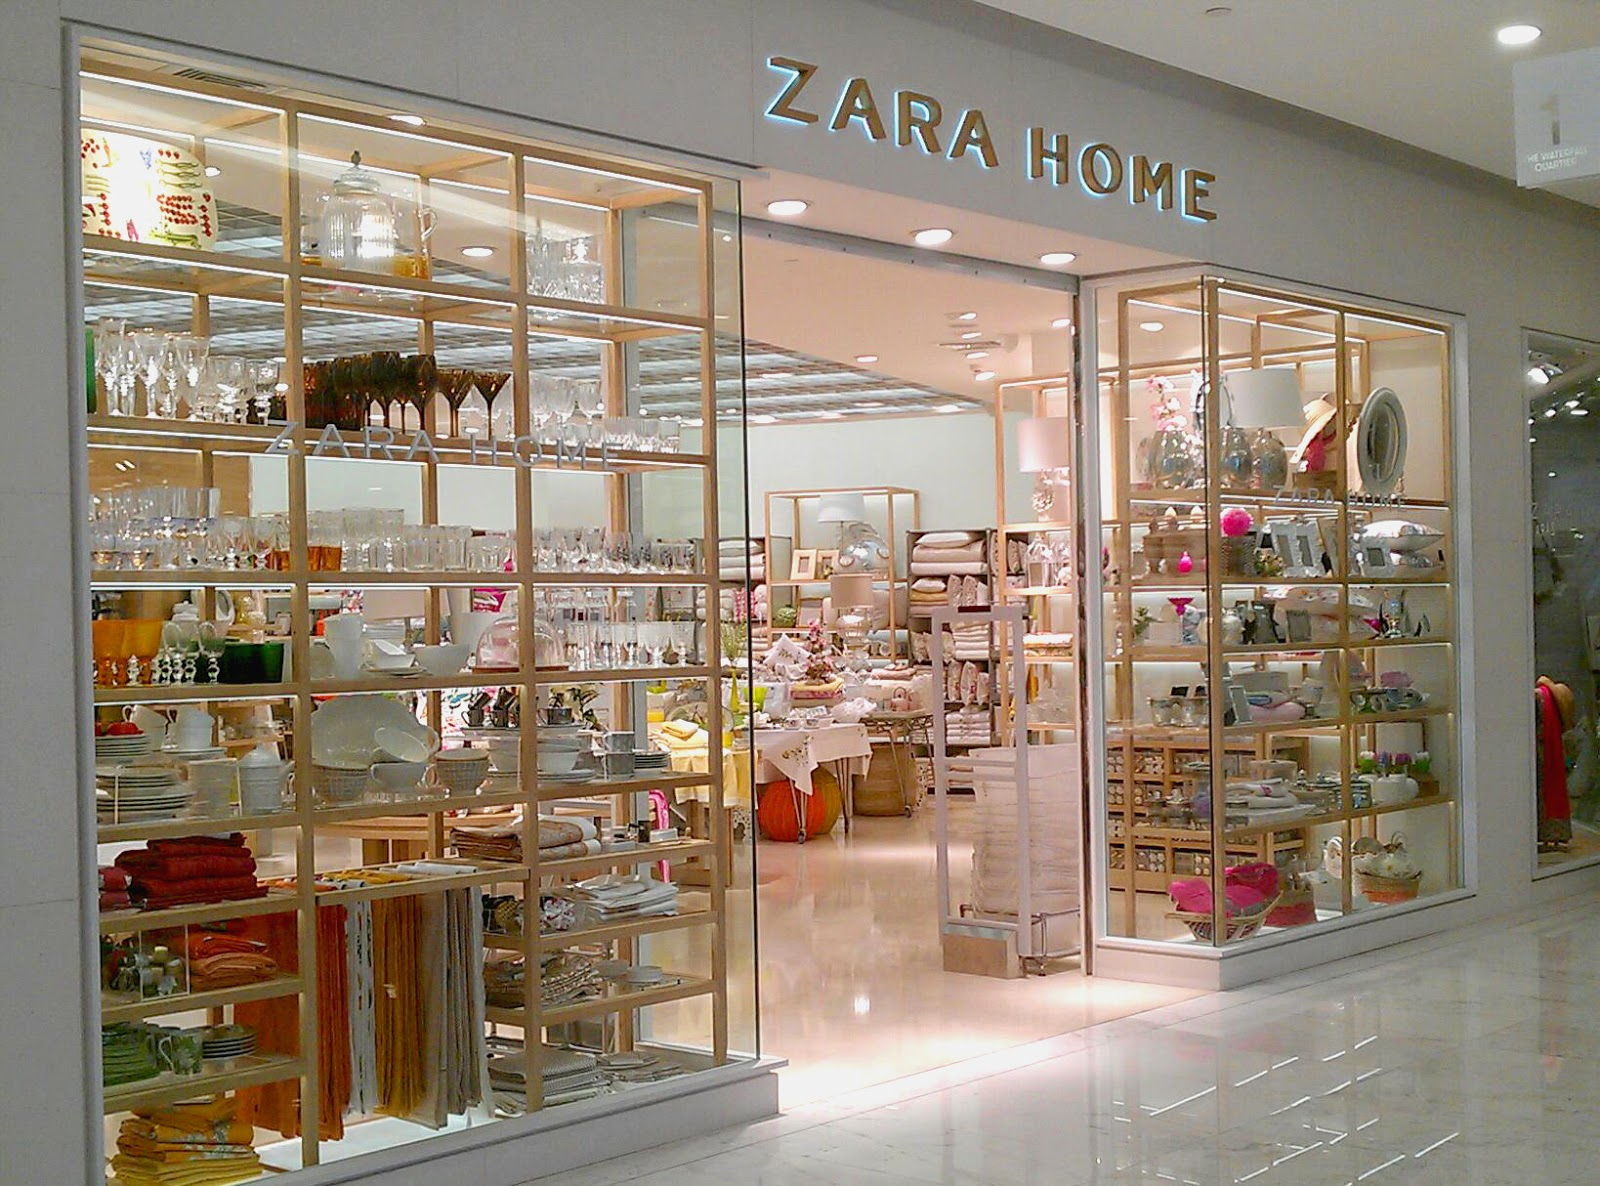 Zara's Custom Tailor, Pattaya: Hours, Address, Zara's Custom Tailor Reviews: 5/5